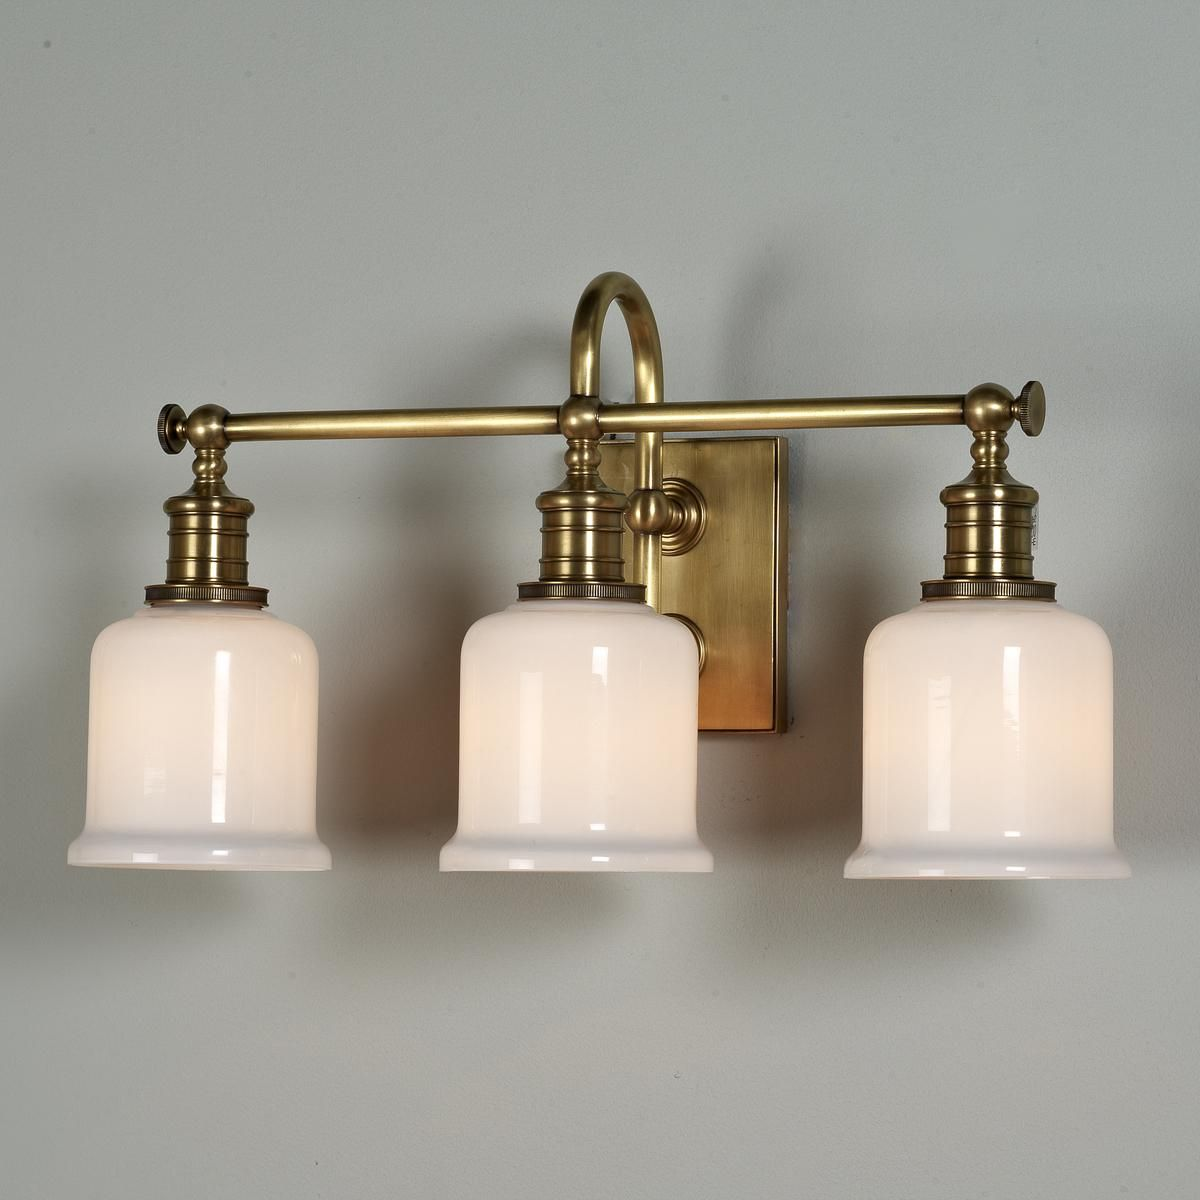 Well Appointed Bath Light Light Bath Light Polished Chrome - Antique brass bathroom light fixtures for bathroom decor ideas